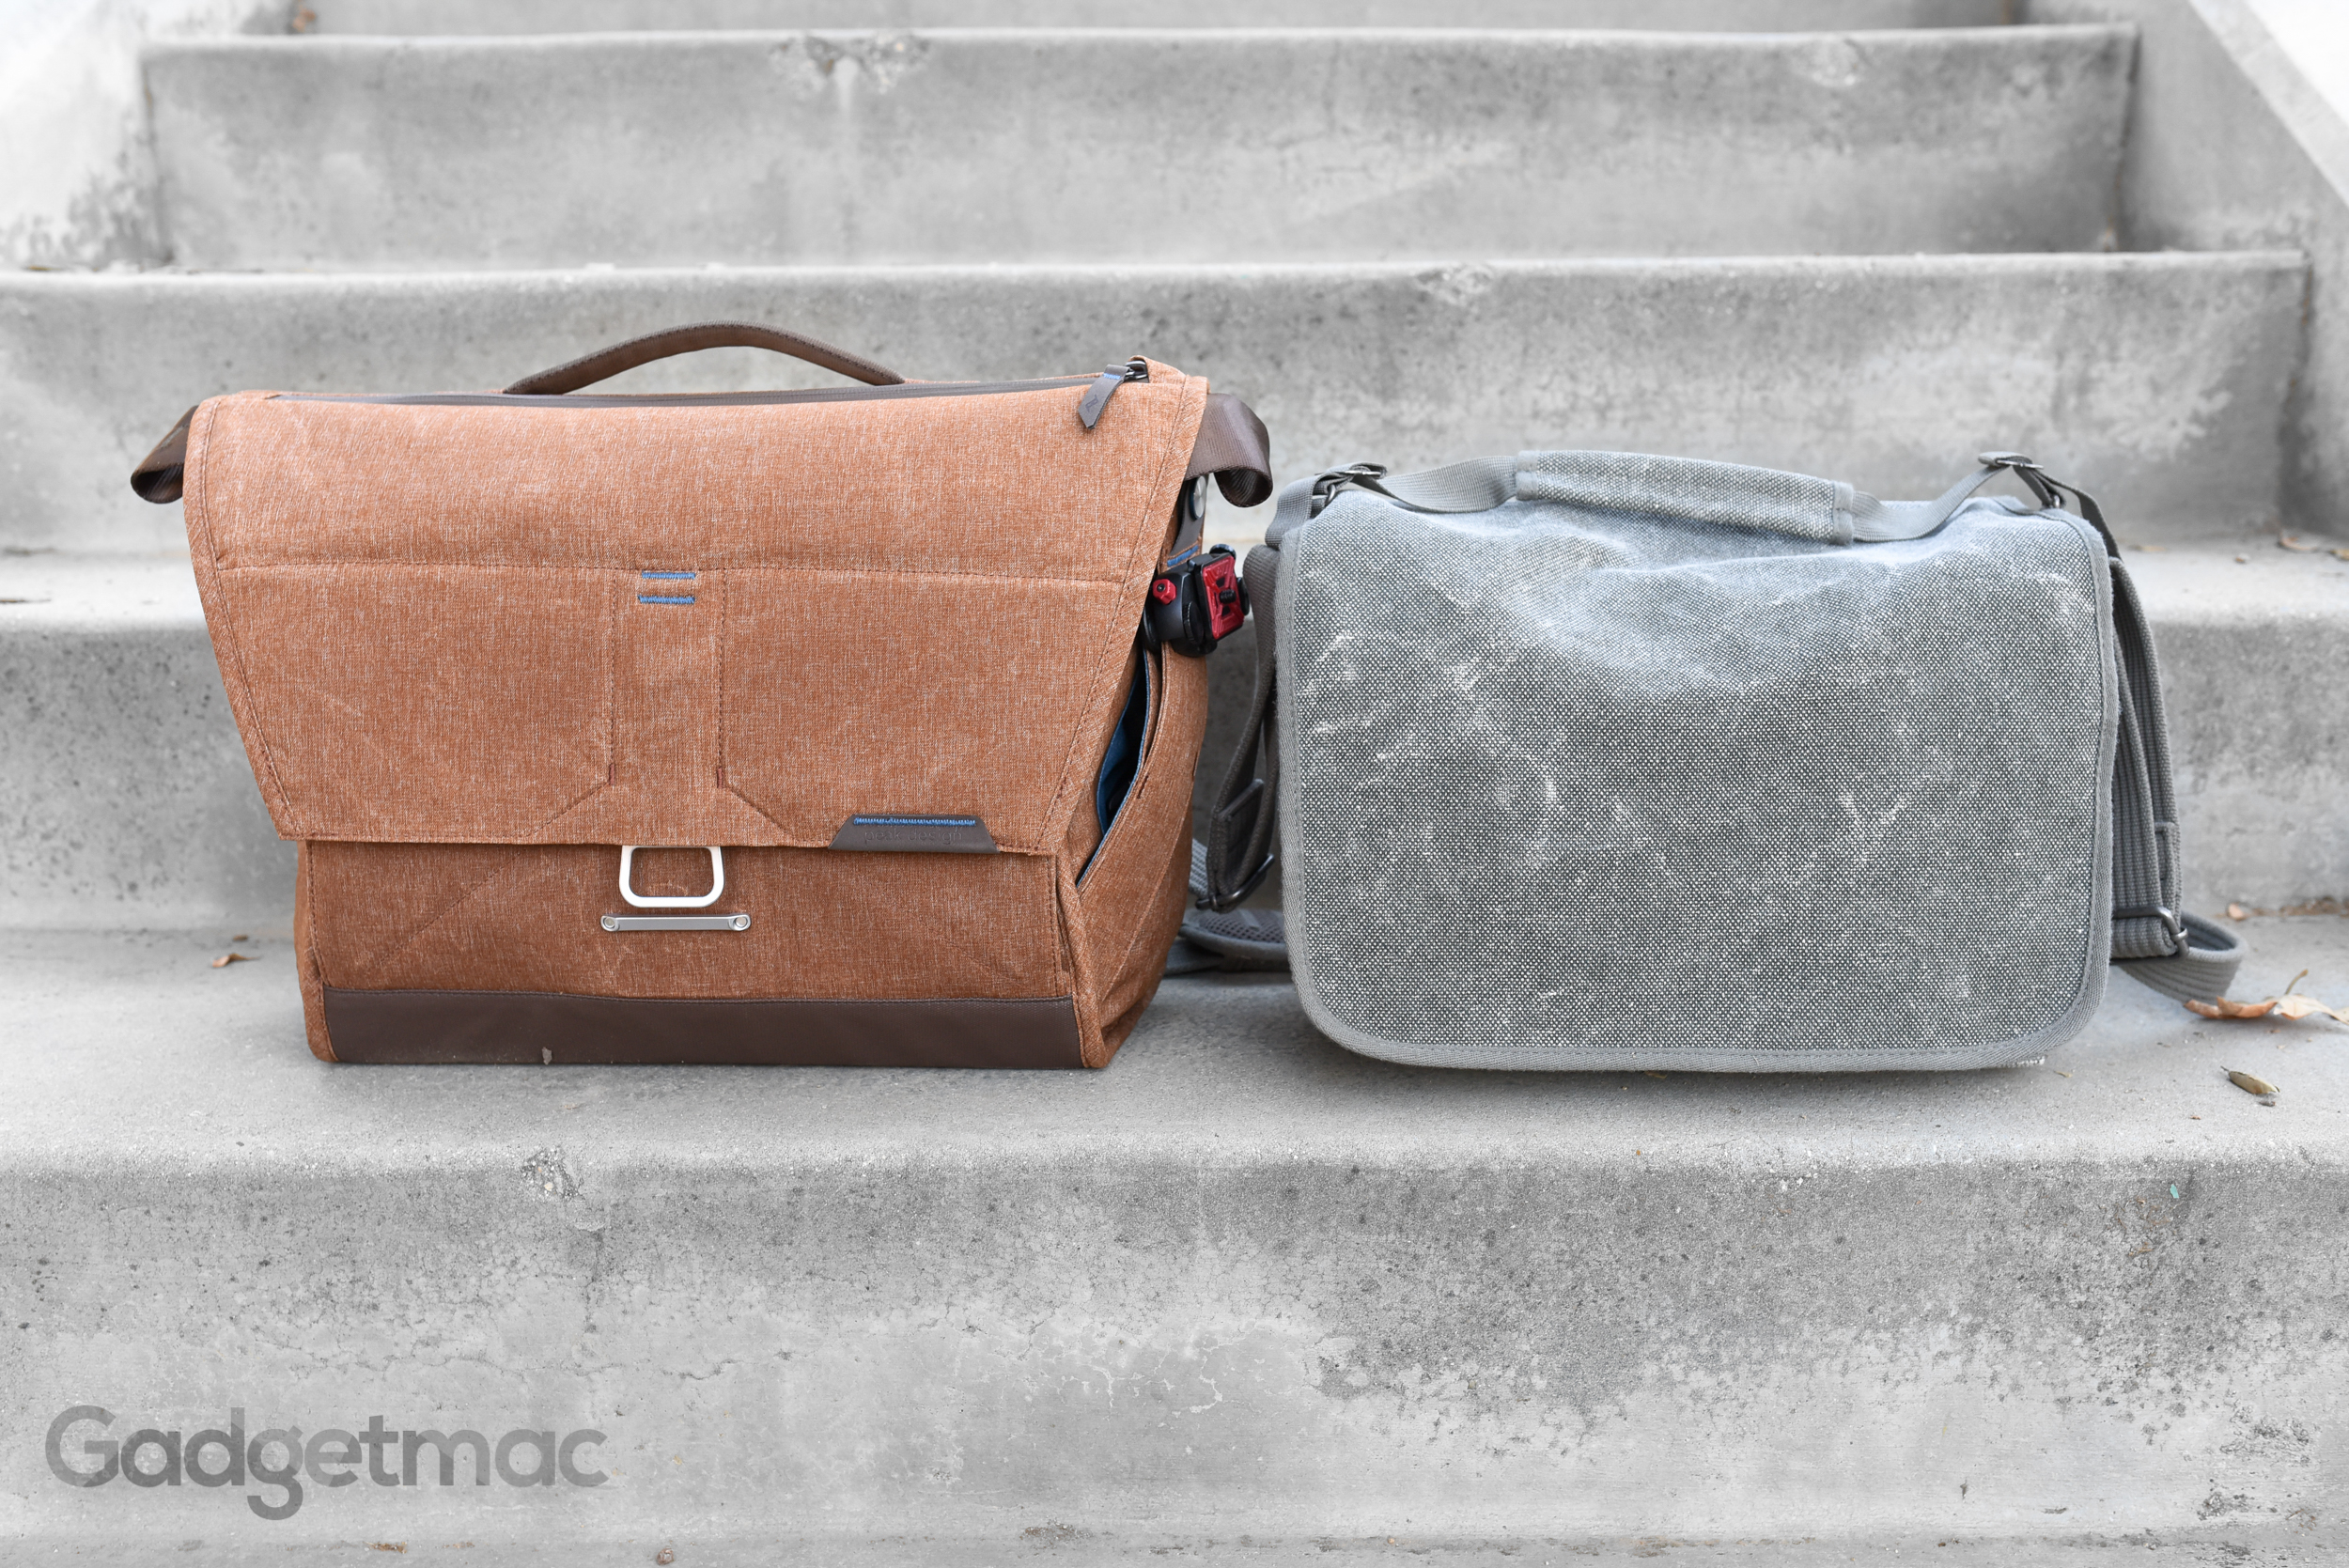 peak-design-everyday-messenger-vs-thinktank-retrospective-7-camera-bag.jpg